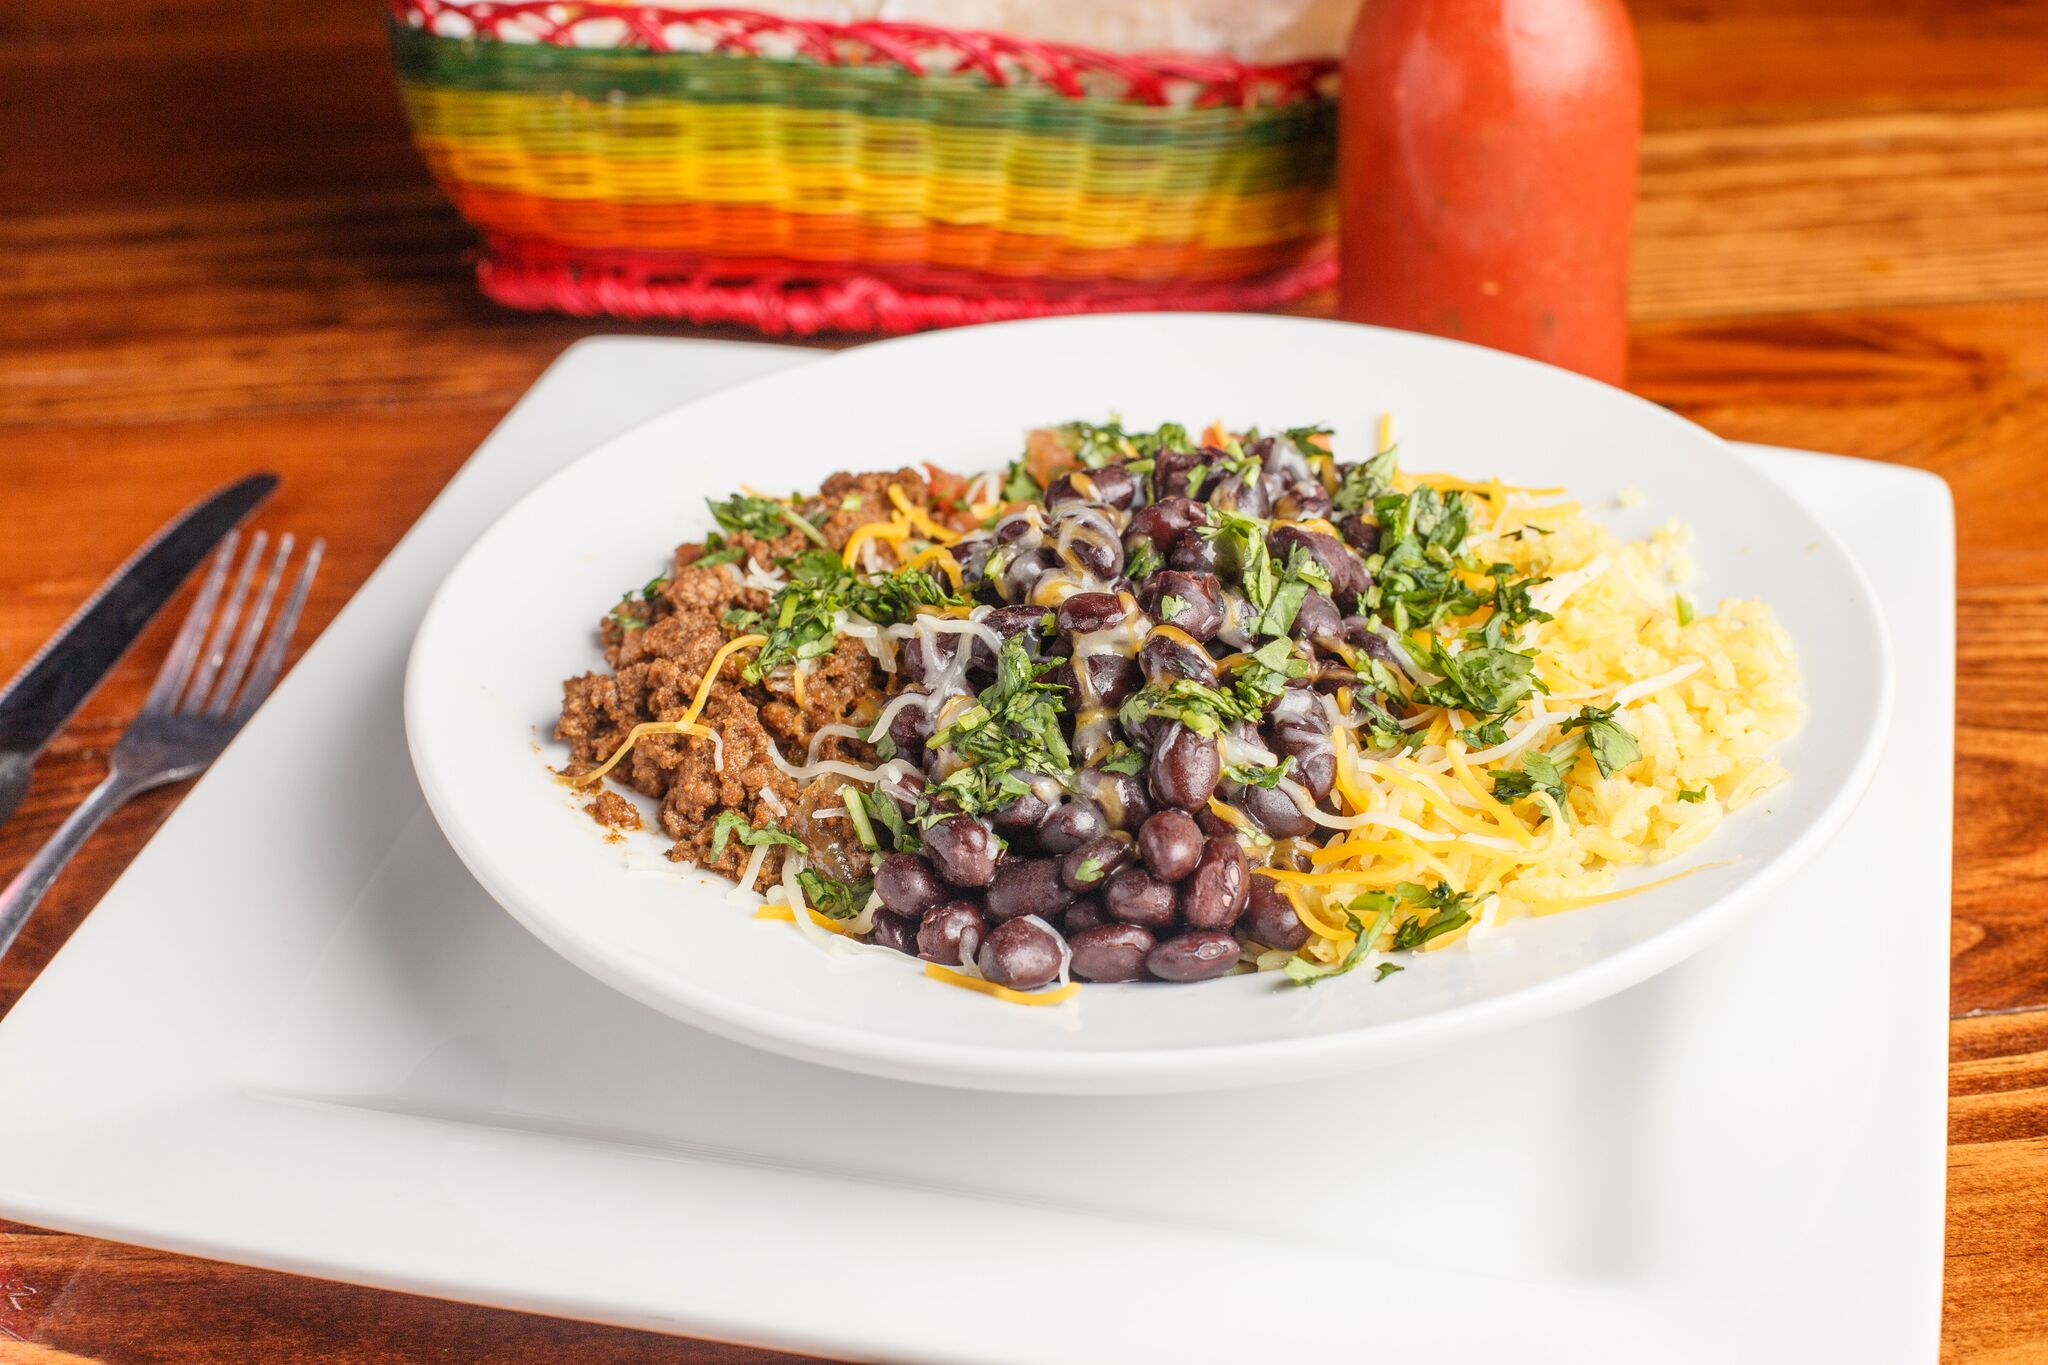 plate with ground beef, black beans and yellow rice sprinkled with cilantro and shredded cheese.